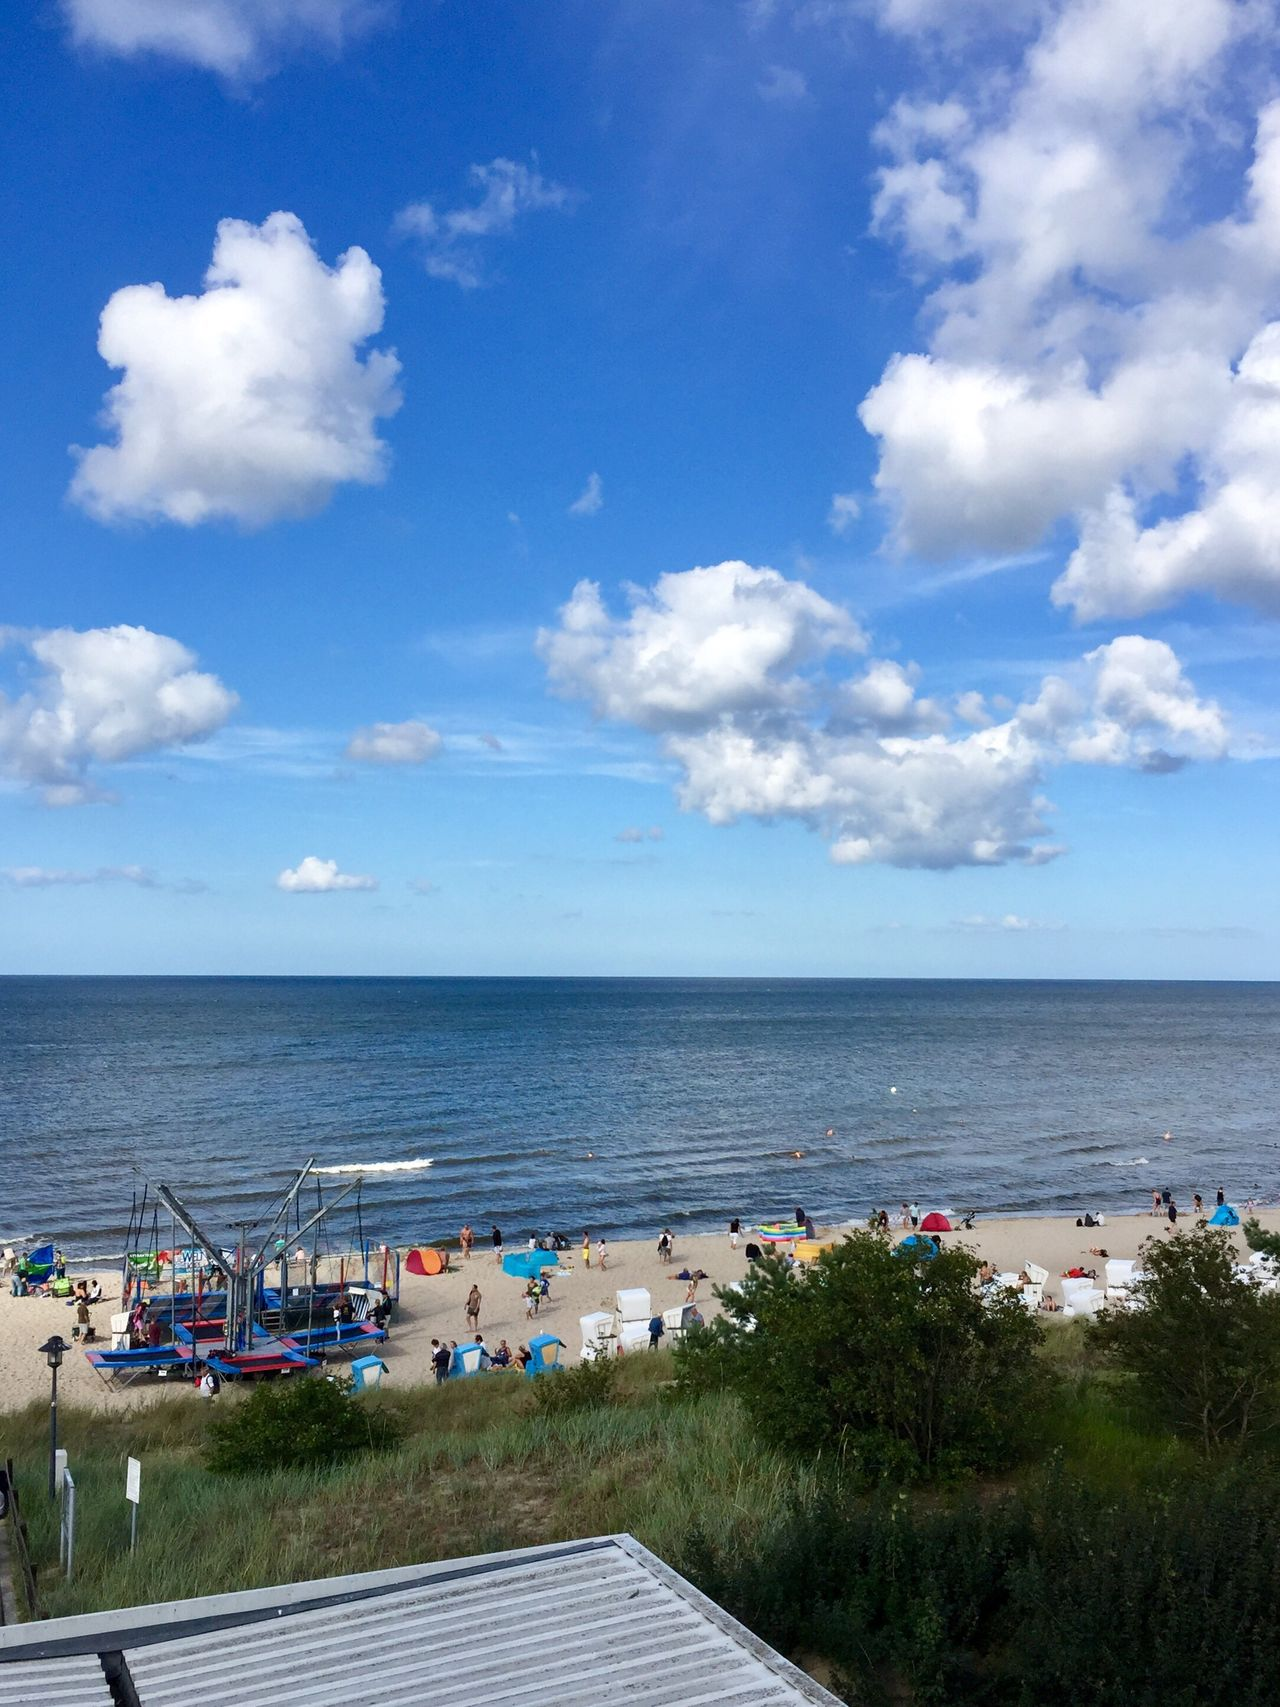 Sea Sky Cloud - Sky Horizon Over Water Water Beach Day Tranquility Nature Scenics Tranquil Scene Beauty In Nature Outdoors High Angle View Blue Tree No People Travel Destinations Architecture Building Exterior Usedom Usedom, Germany Balticsea Zinnowitz View